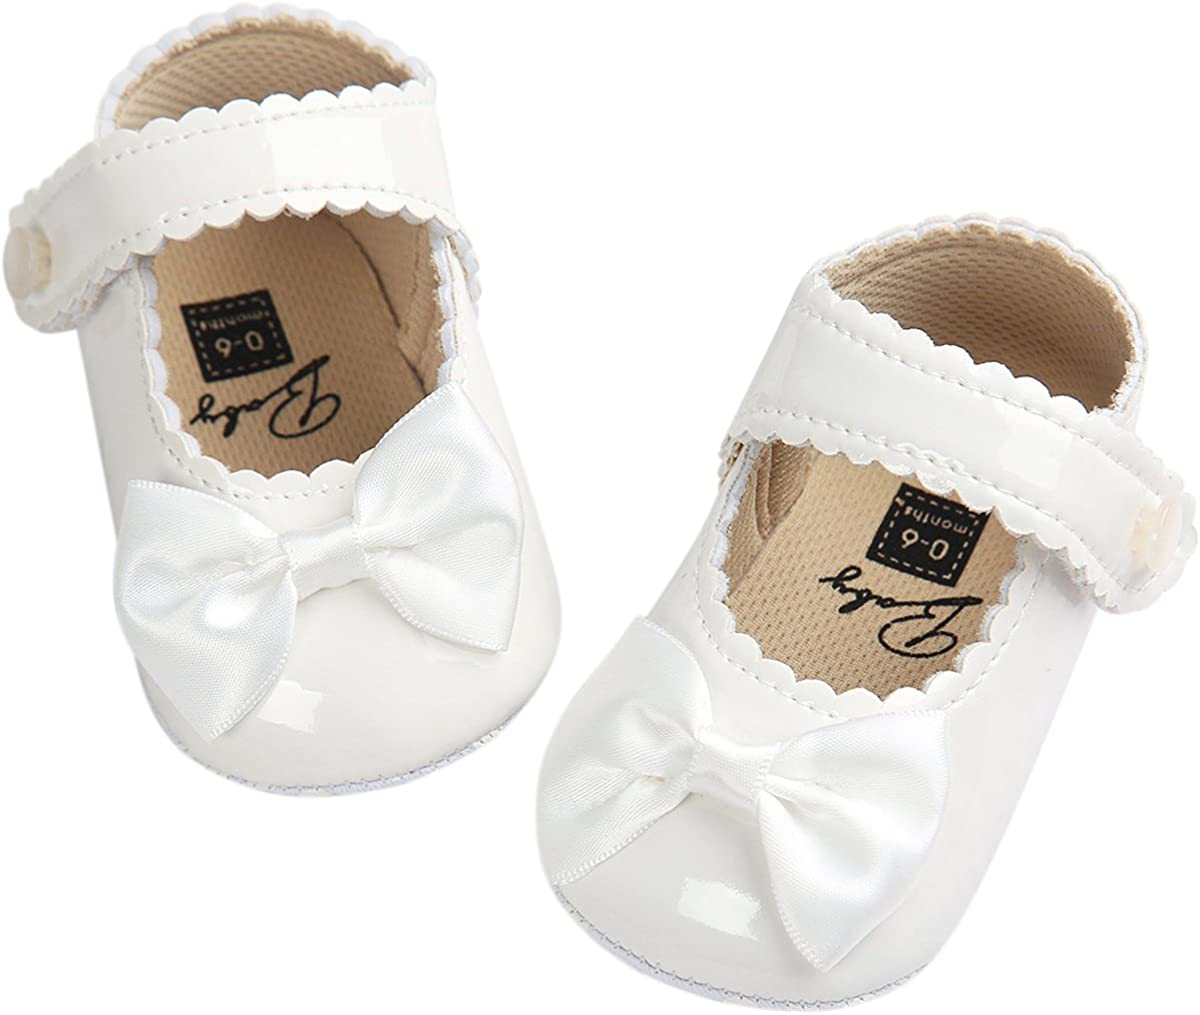   Fire Frog Baby Girls Mary Jane Pu Leather Bowknot Pincess Prewalker Christening Baptism Crib Shoes White   Mary Jane